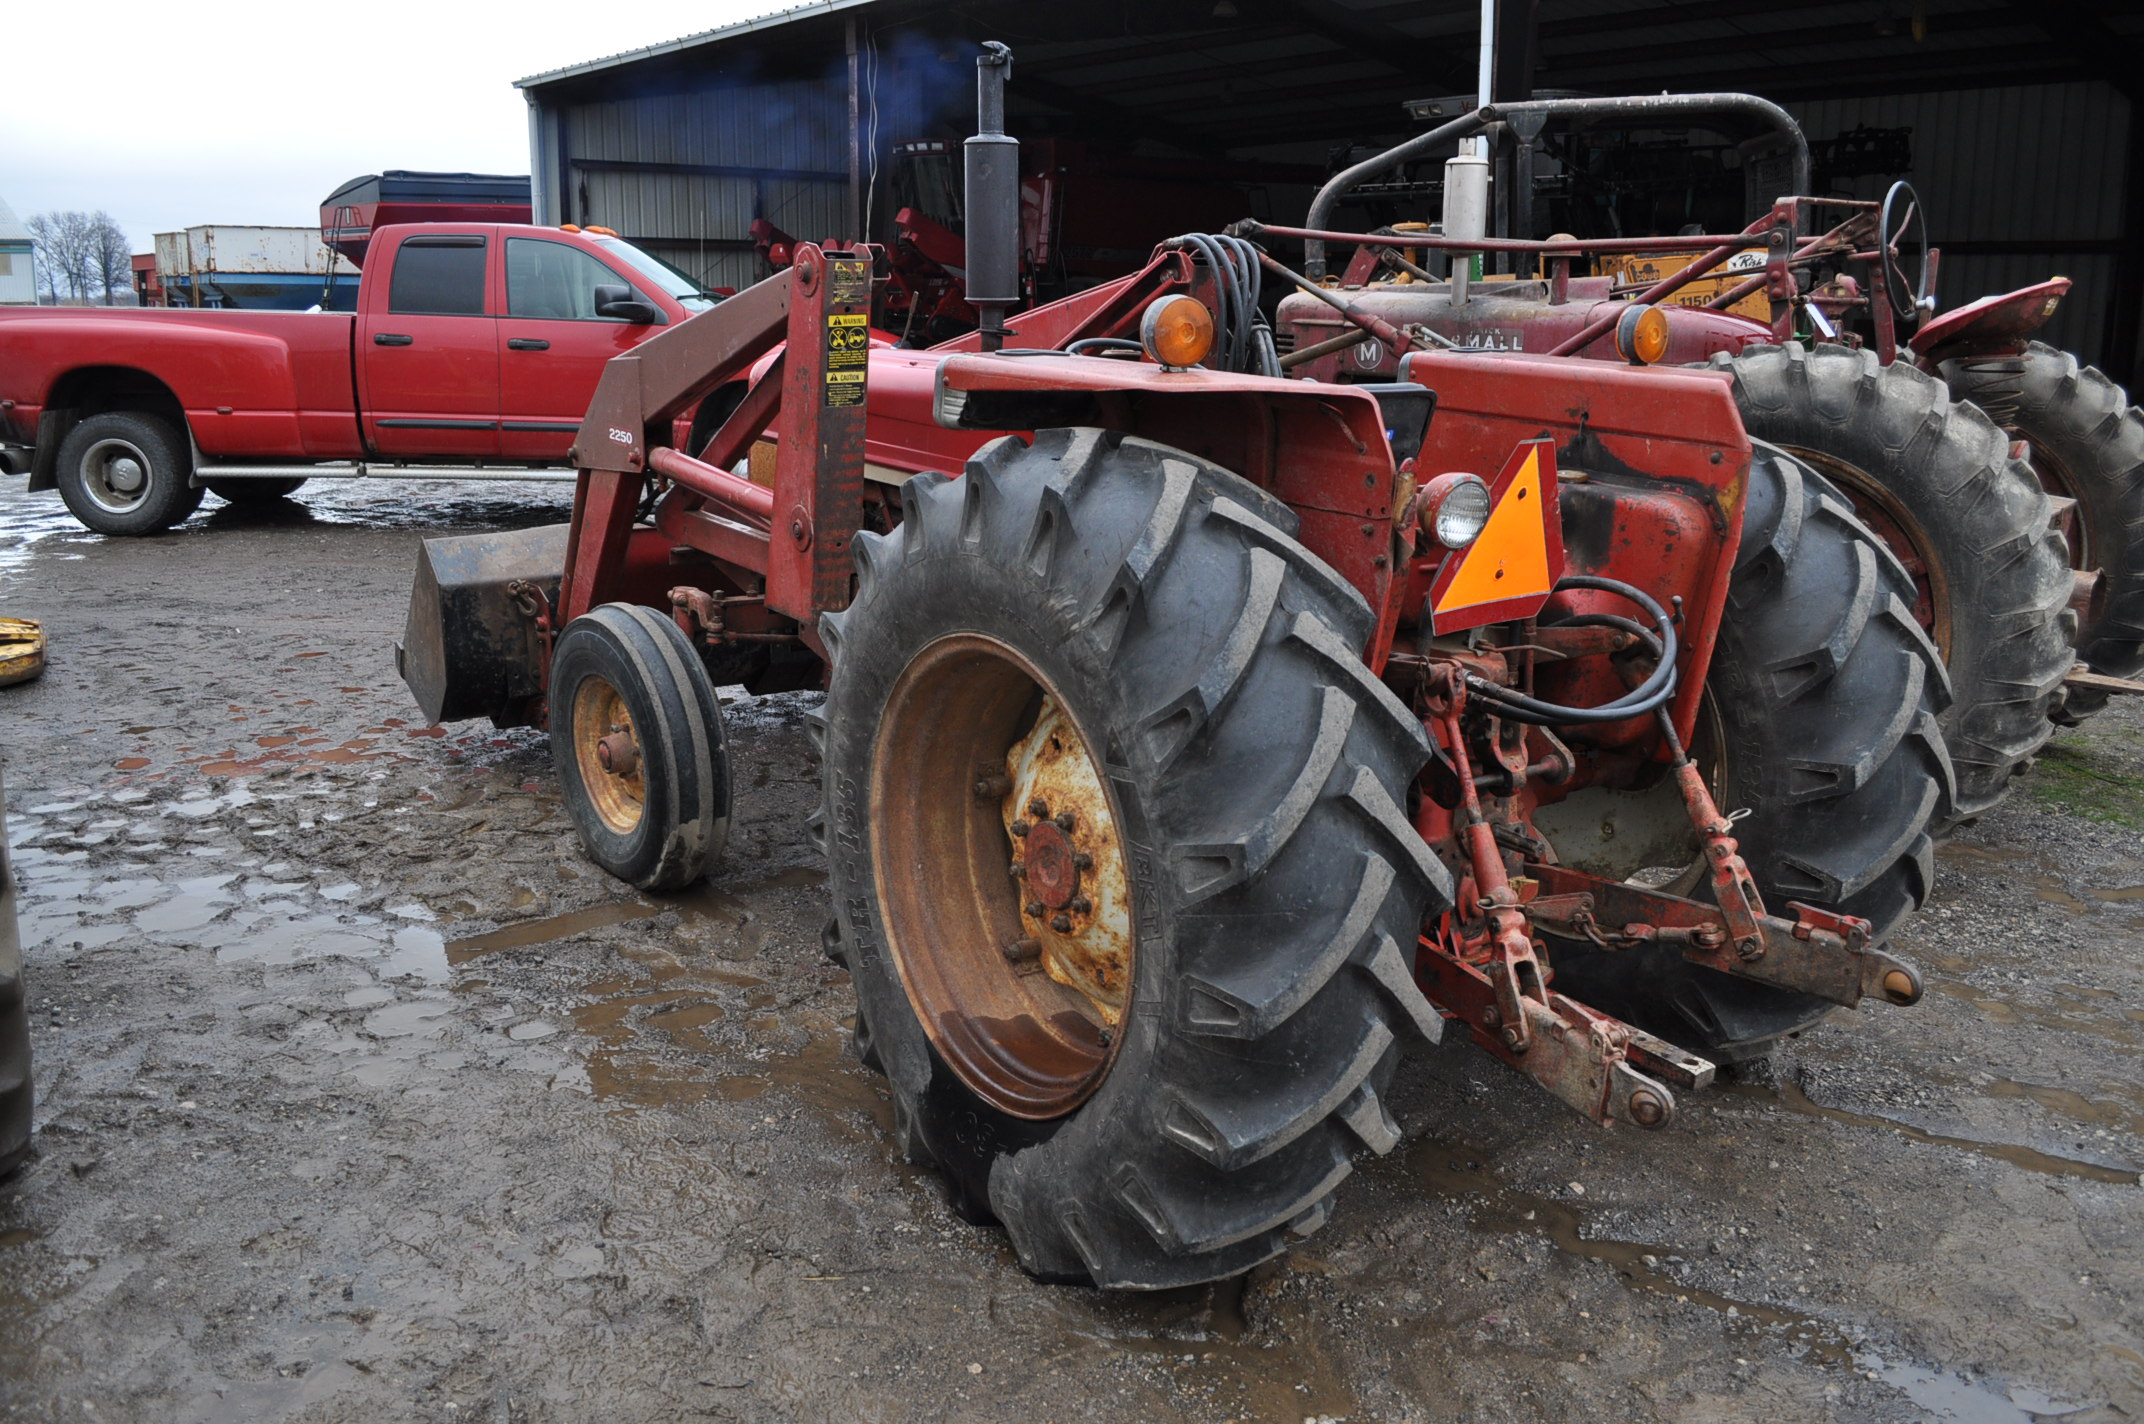 International 674 tractor, 16.9-30 rear, 7.50-16 front, diesel, single hyd, 3pt, 540 PTO, sells with - Image 4 of 16